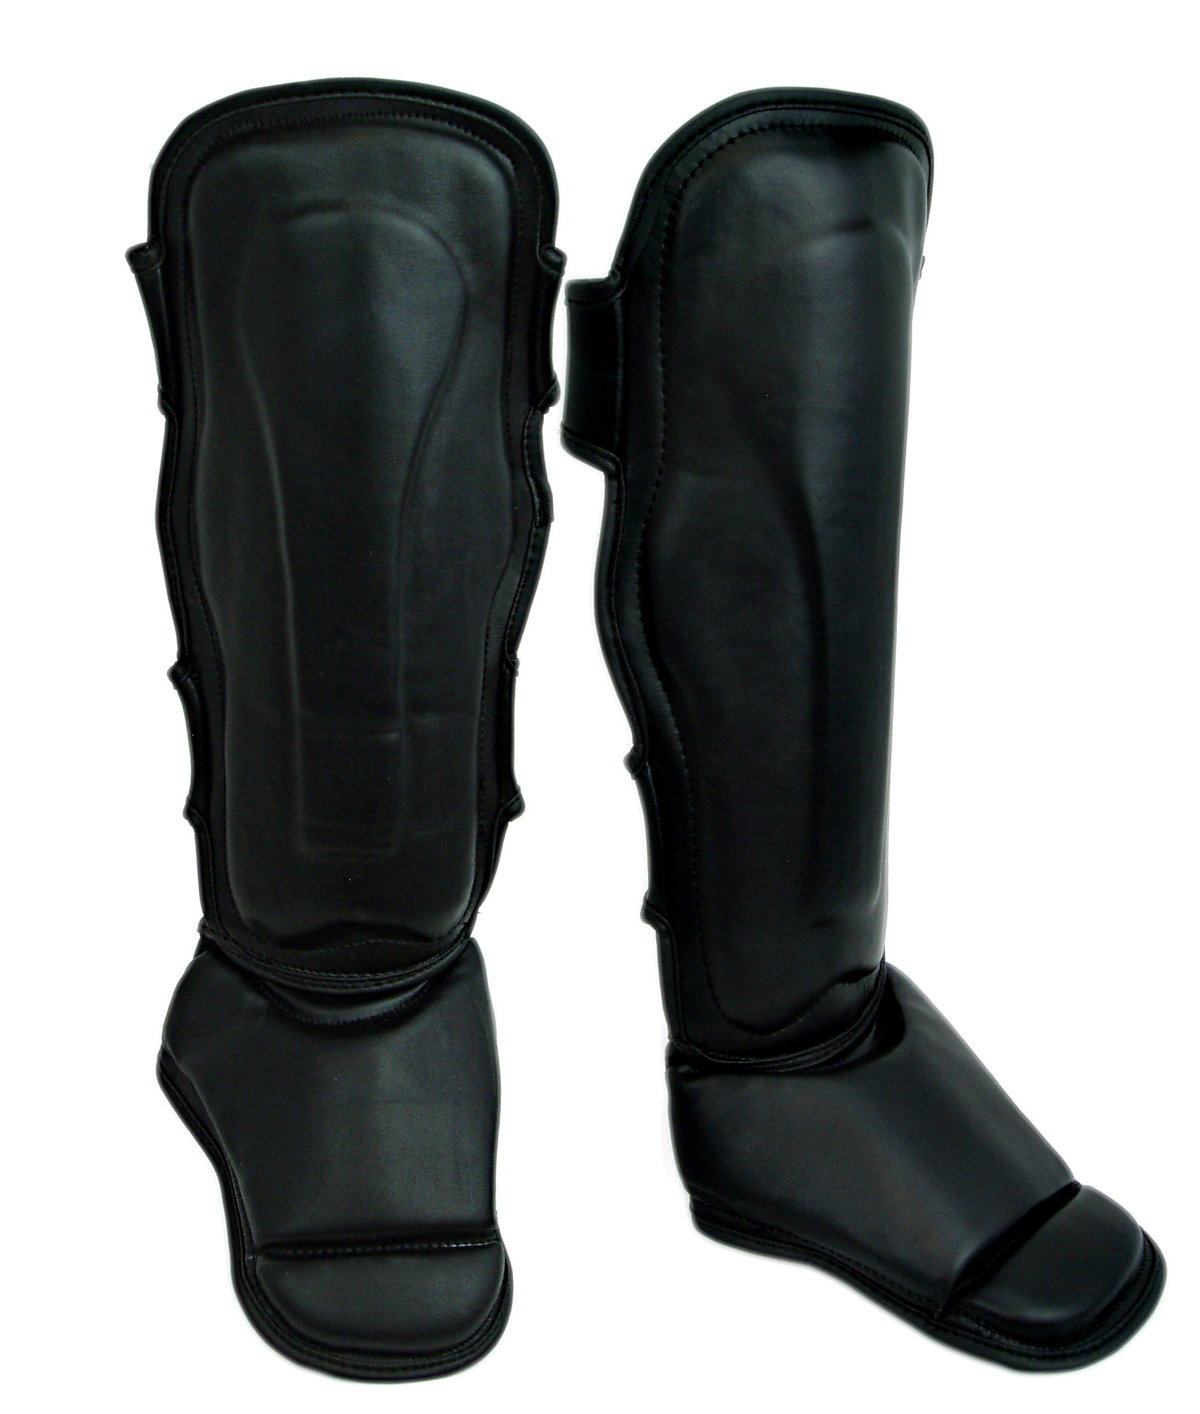 Shin and Instep Guard, Leather, Muay Thai